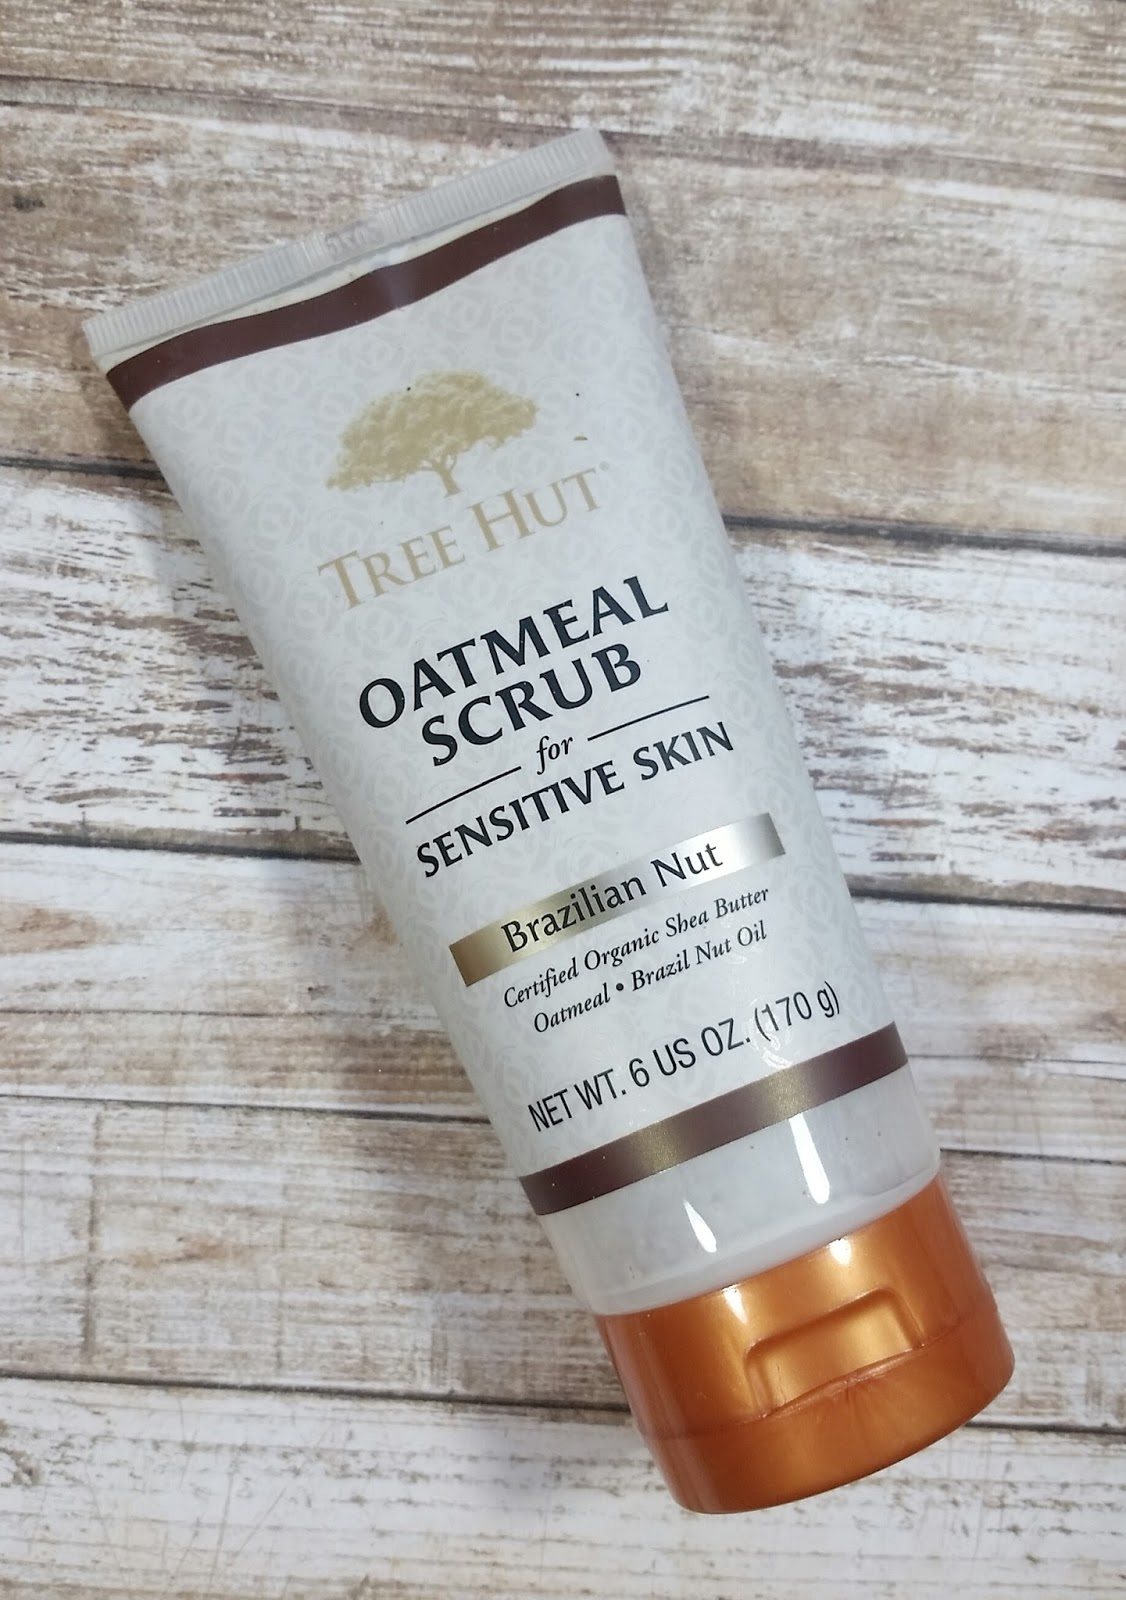 Tree Hut Oatmeal Scrub for Sensitive Skin